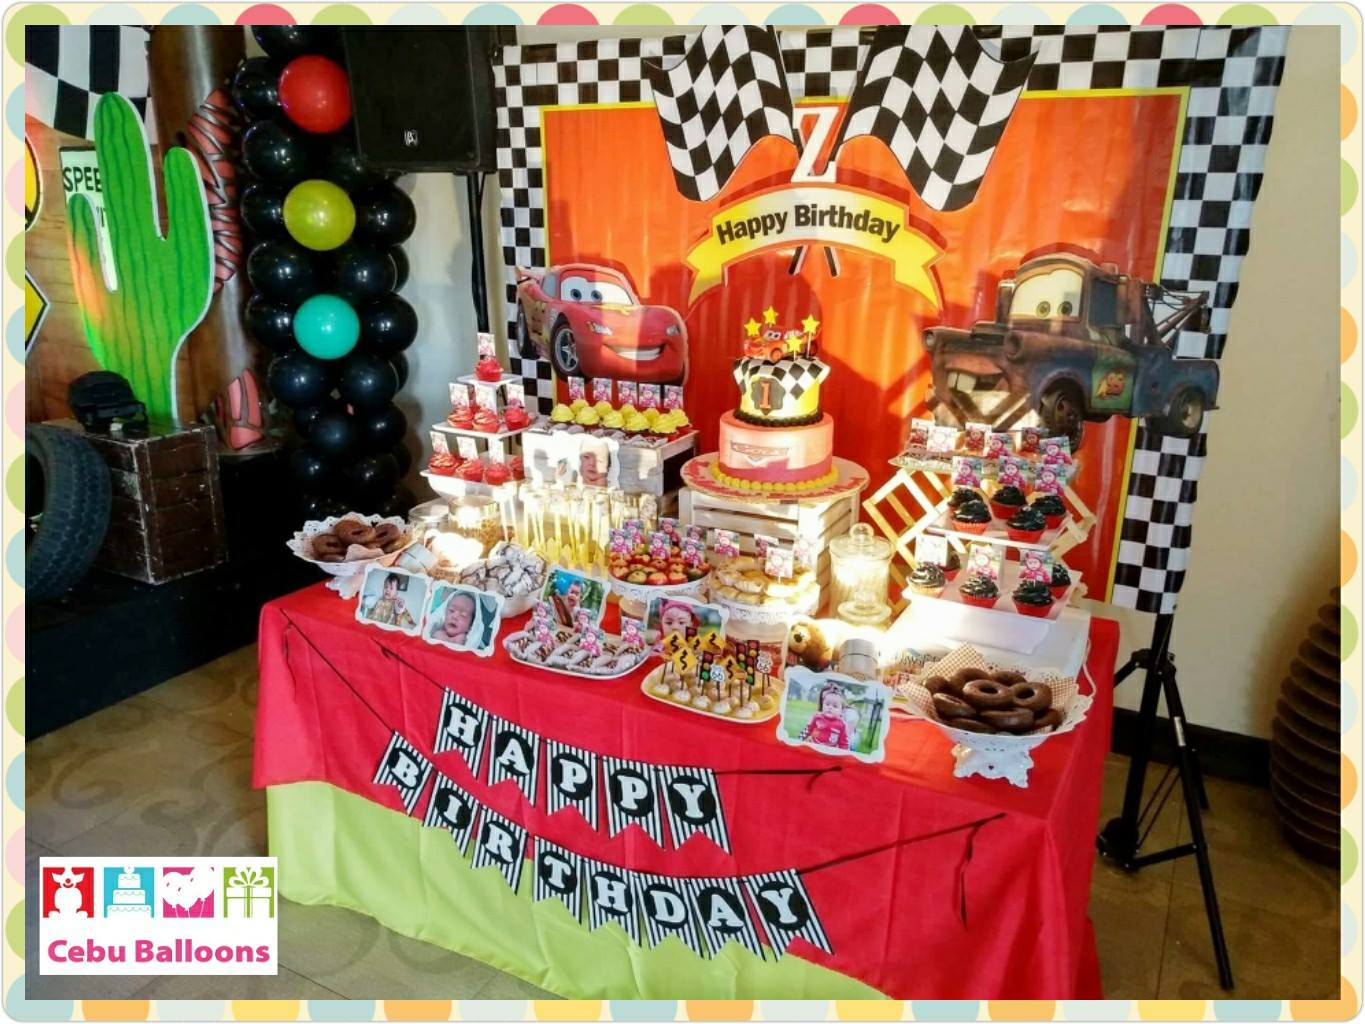 dessert buffet decors cake pastries candies cebu balloons and party supplies. Black Bedroom Furniture Sets. Home Design Ideas